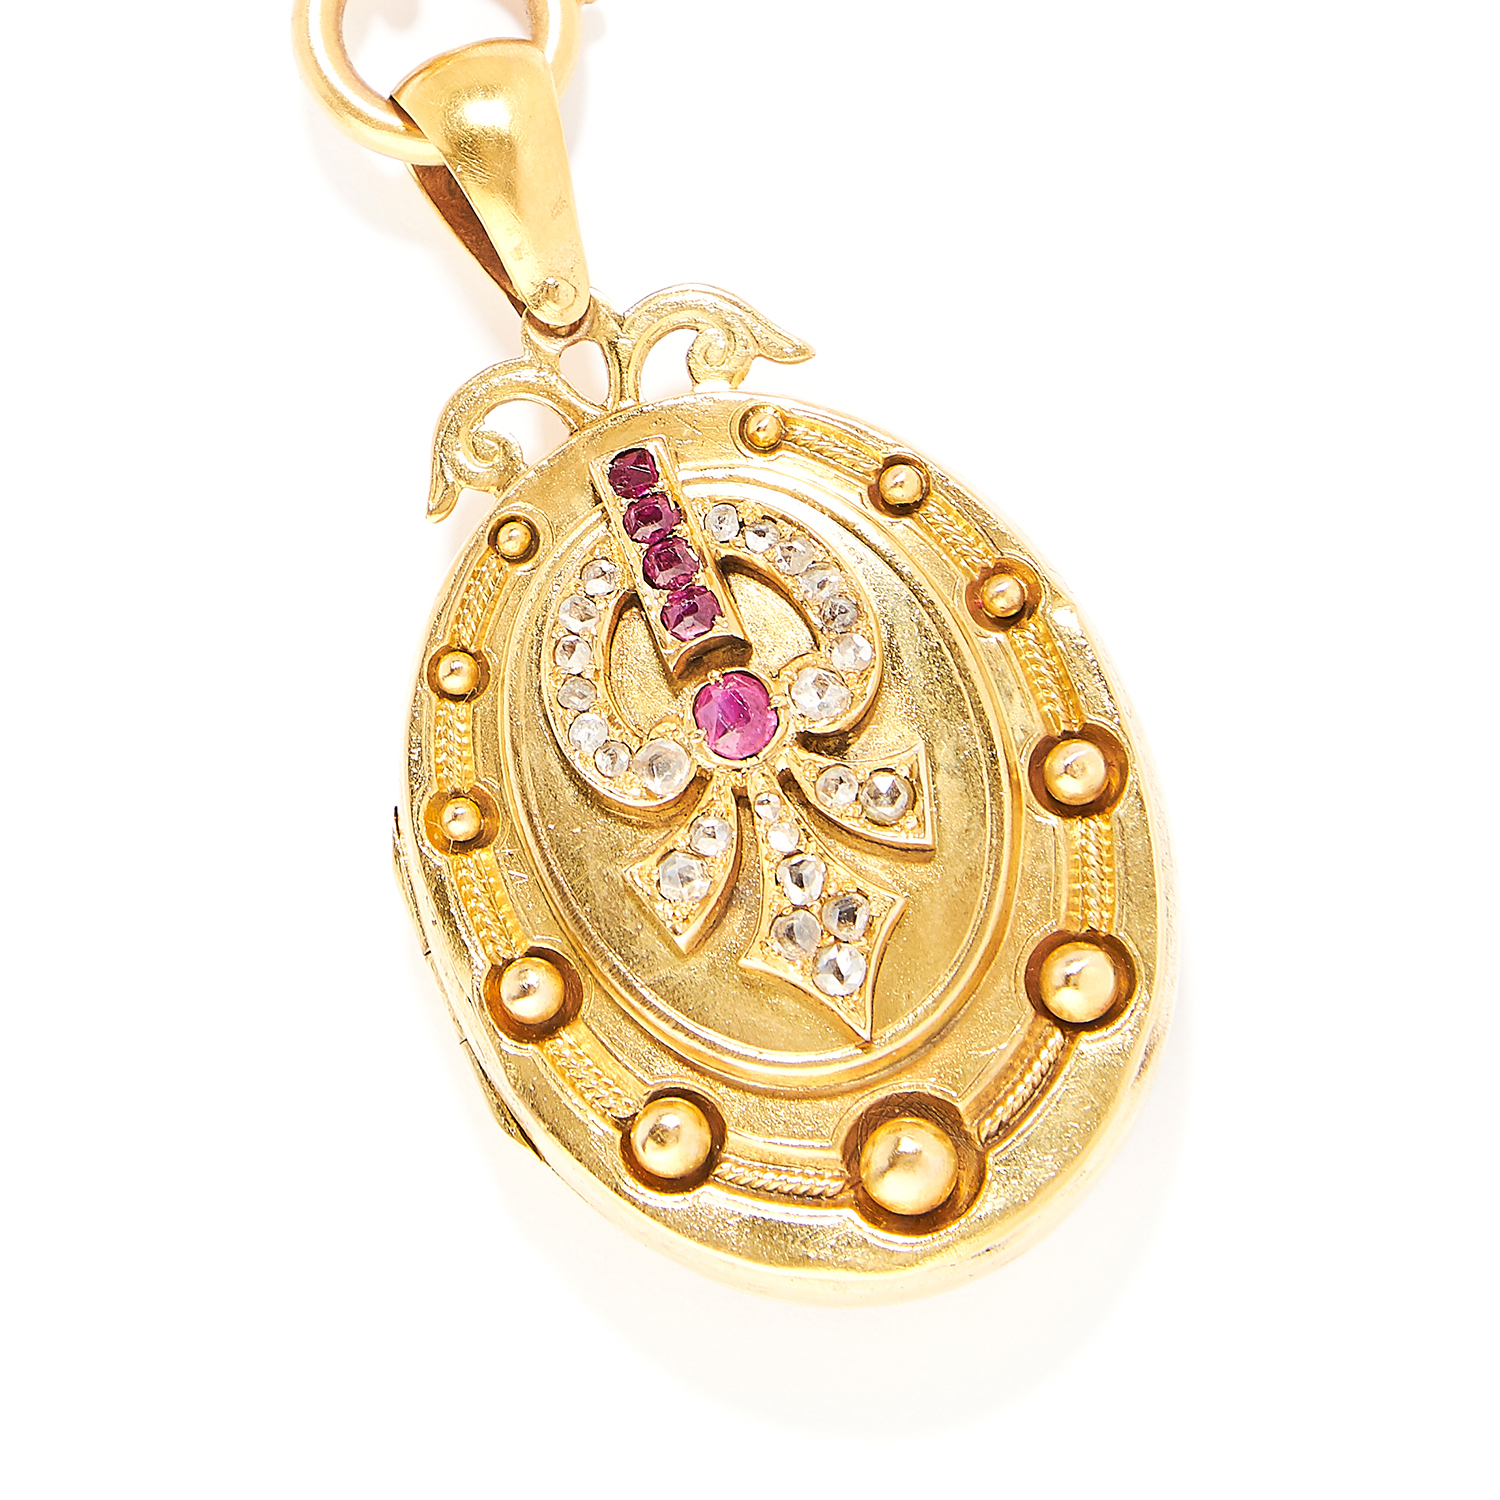 Los 6 - ANTIQUE RUBY AND DIAMOND LOCKET AND CHAIN in high carat yellow gold, the locket is set with rose cut